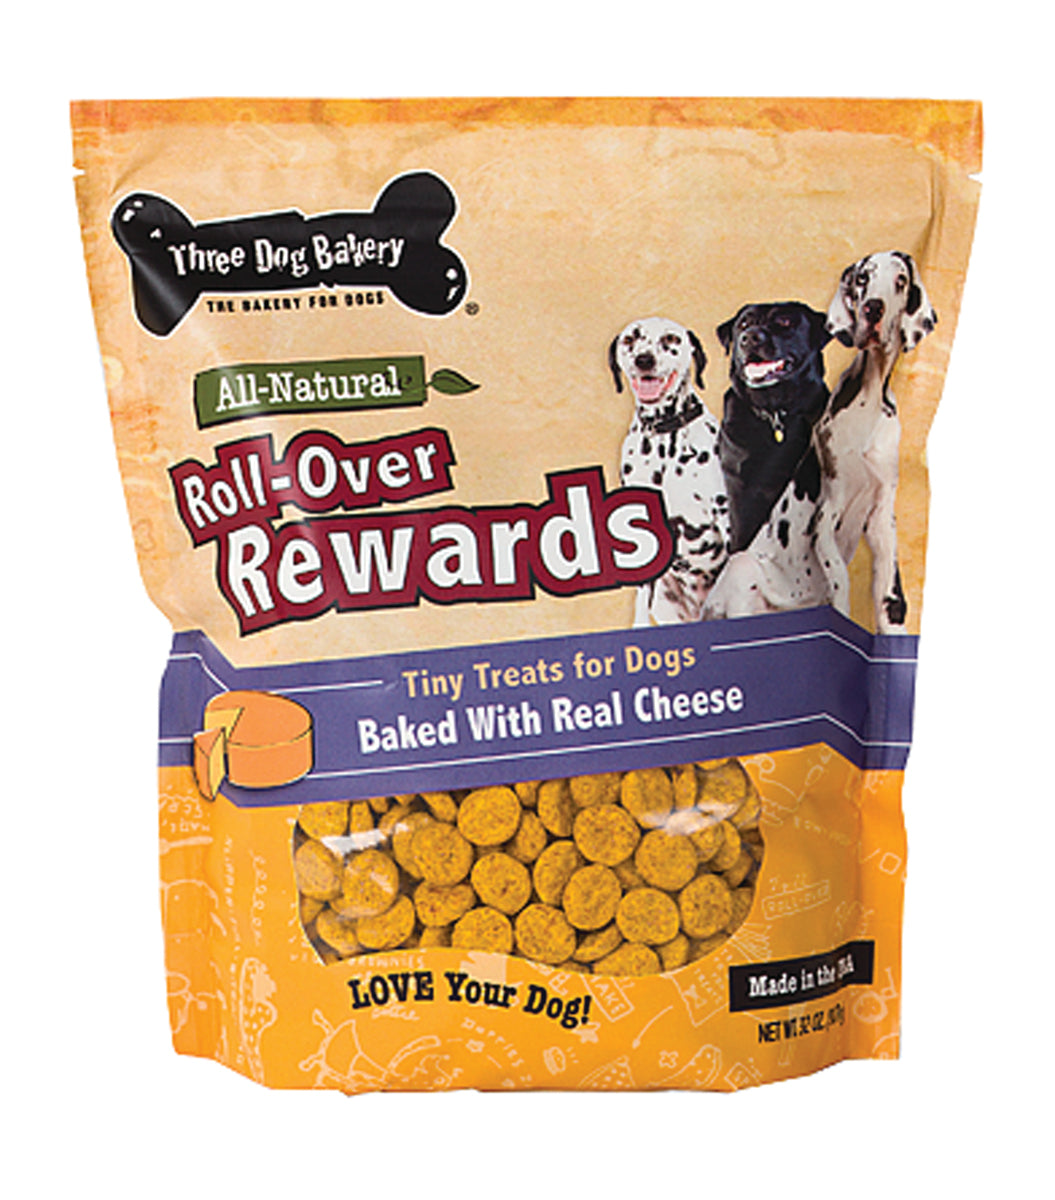 Roll-over Rewards Tiny Treats For Dogs